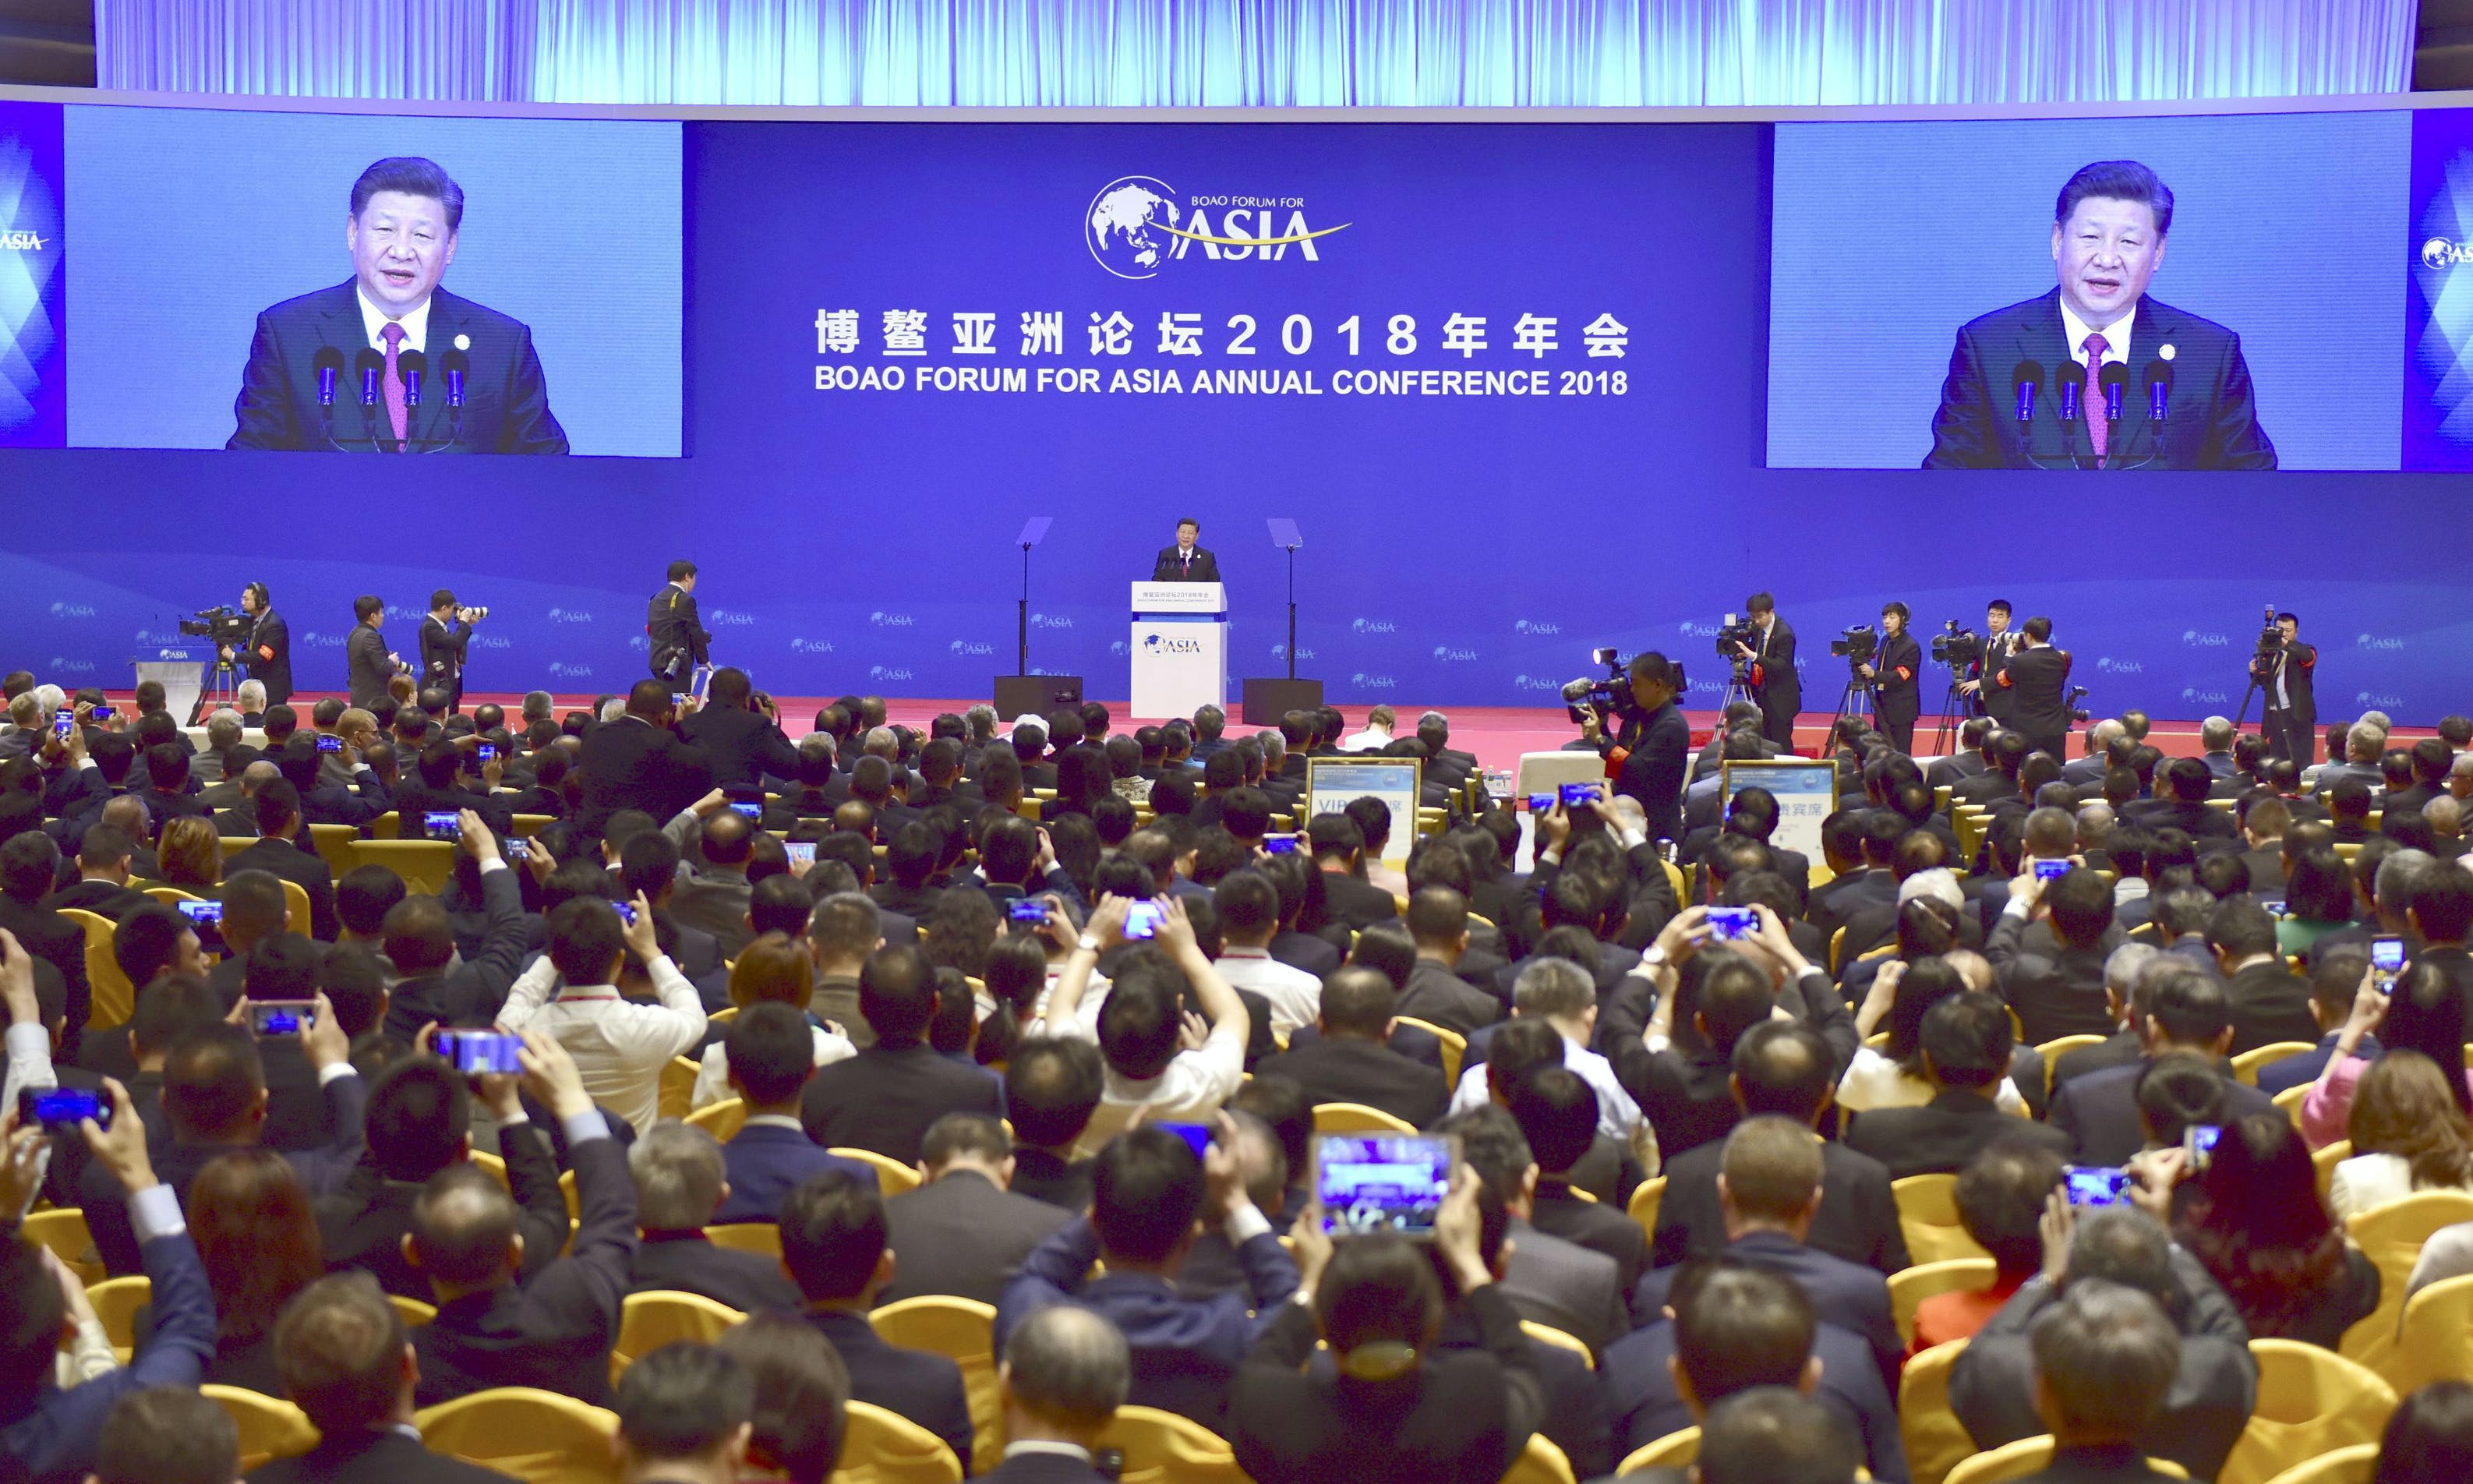 Big Surprise: Chinese State Media Fawned Over the Boao Forum